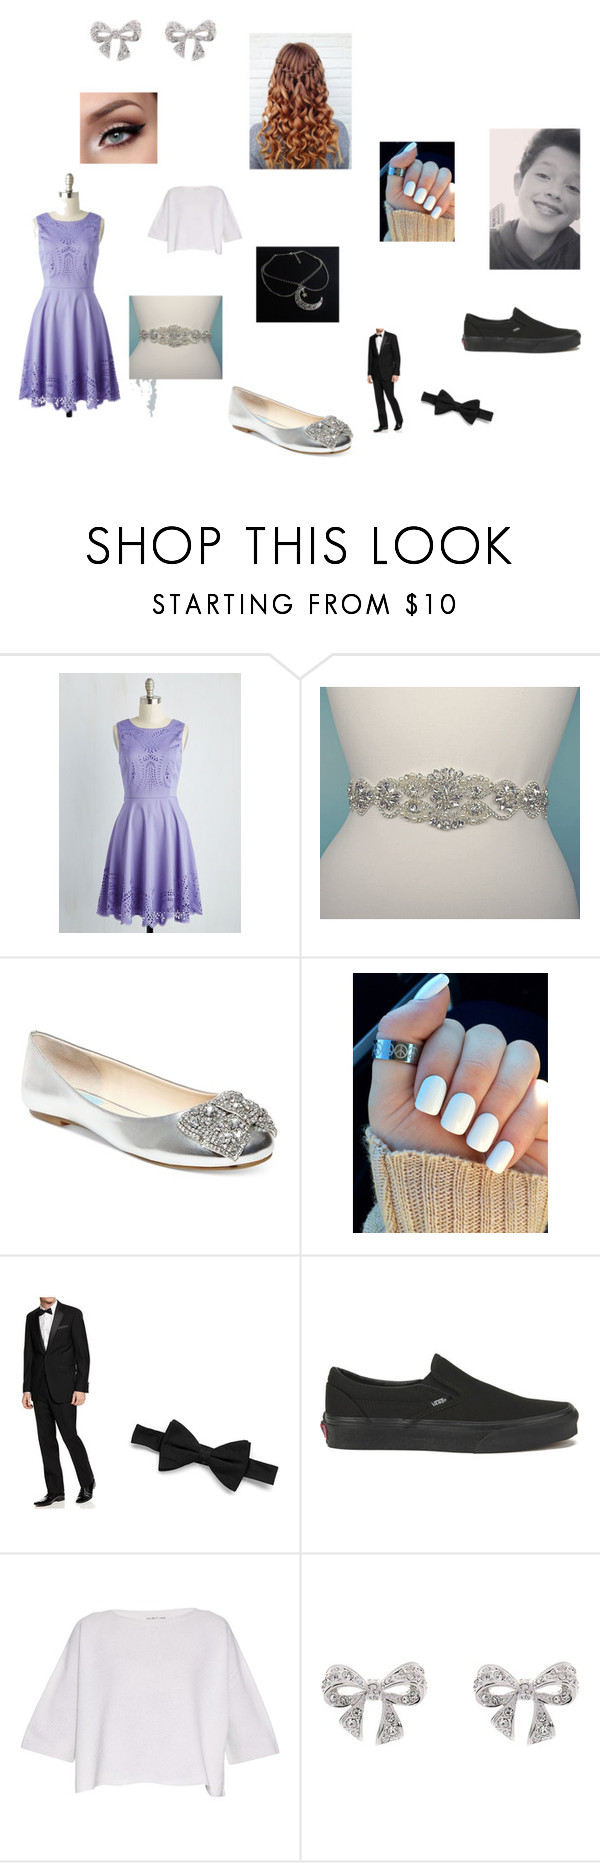 Diamond&Jacob by alissaoriginal on Polyvore featuring Helmut Lang, Betsey Johnson and Vans